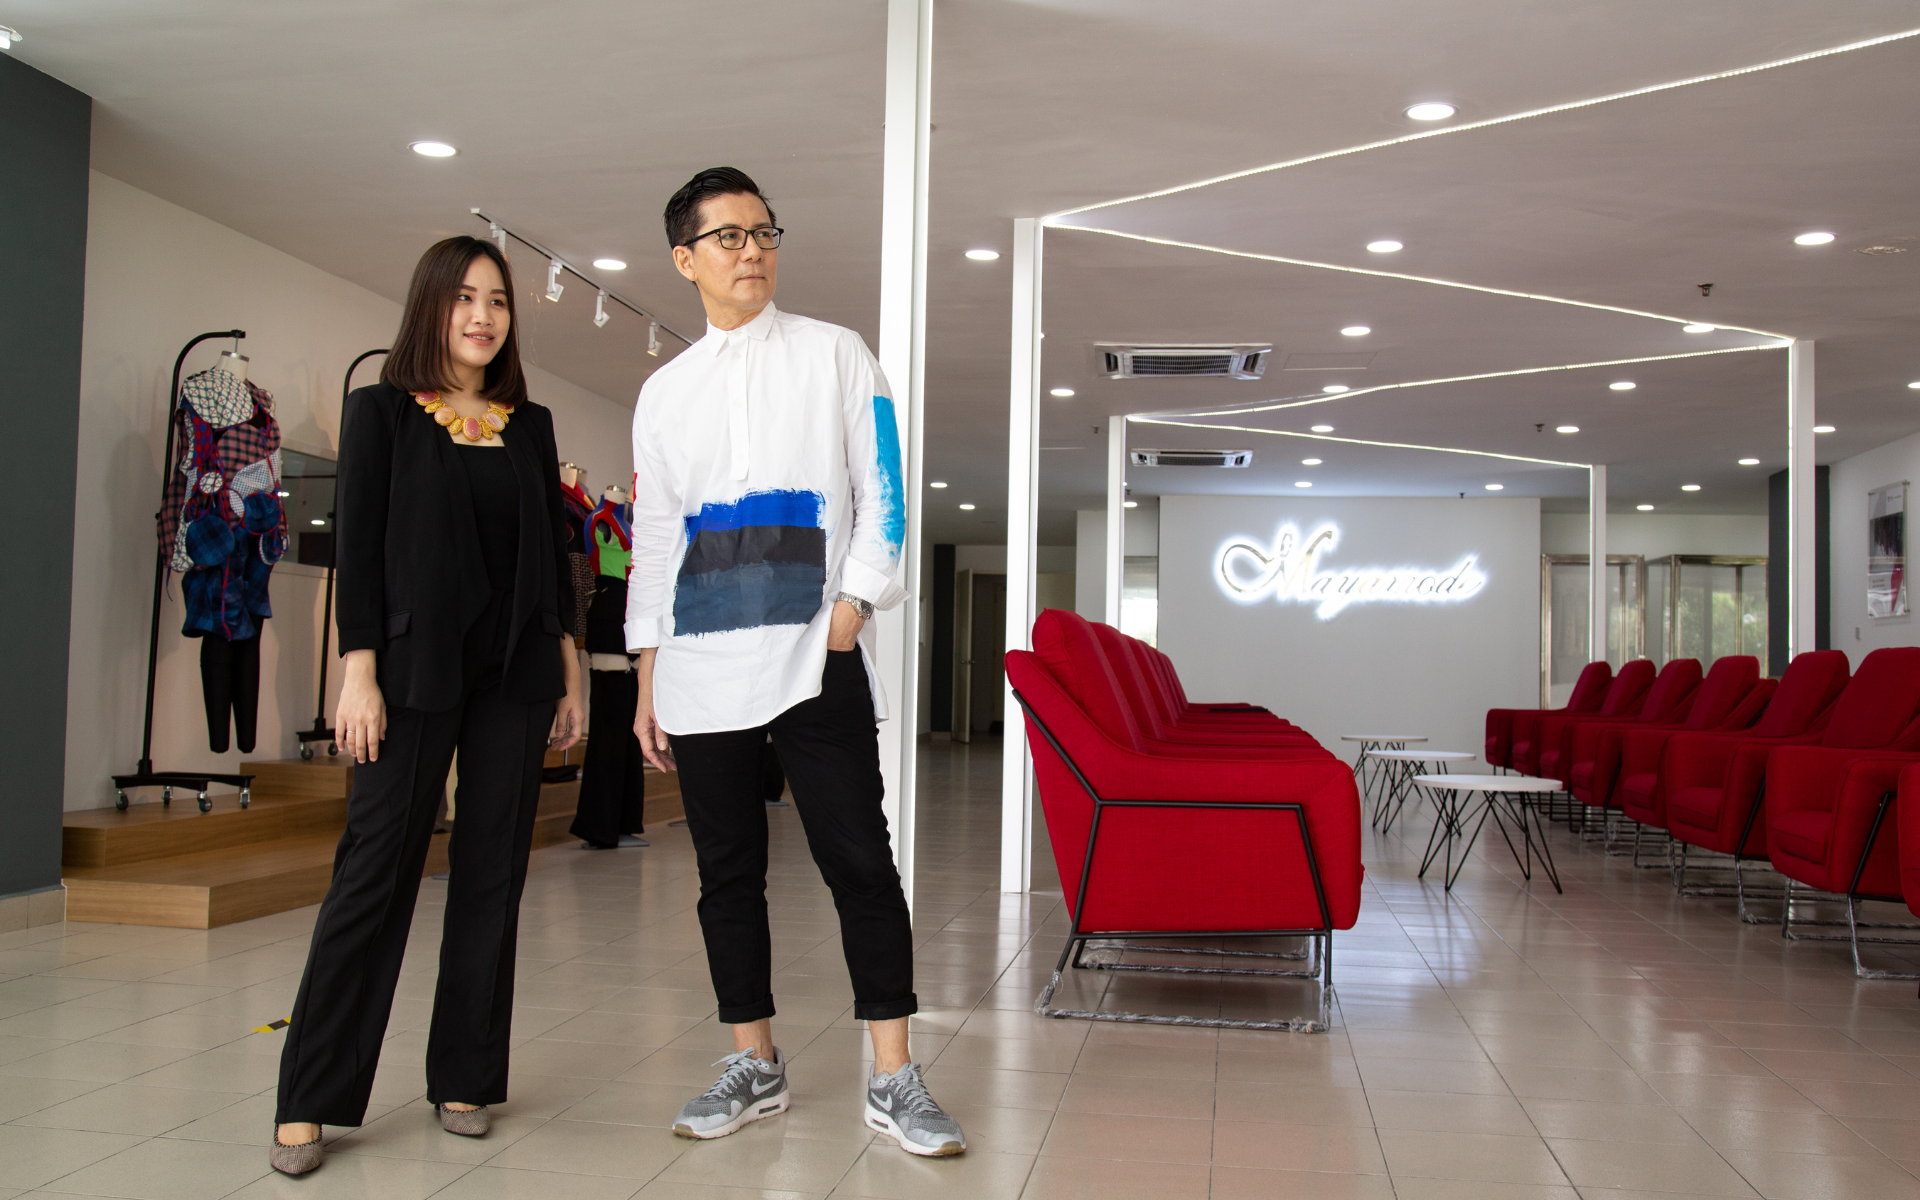 A Closer Look At Mayamode, Malaysia's First Co-Working Fashion Studio